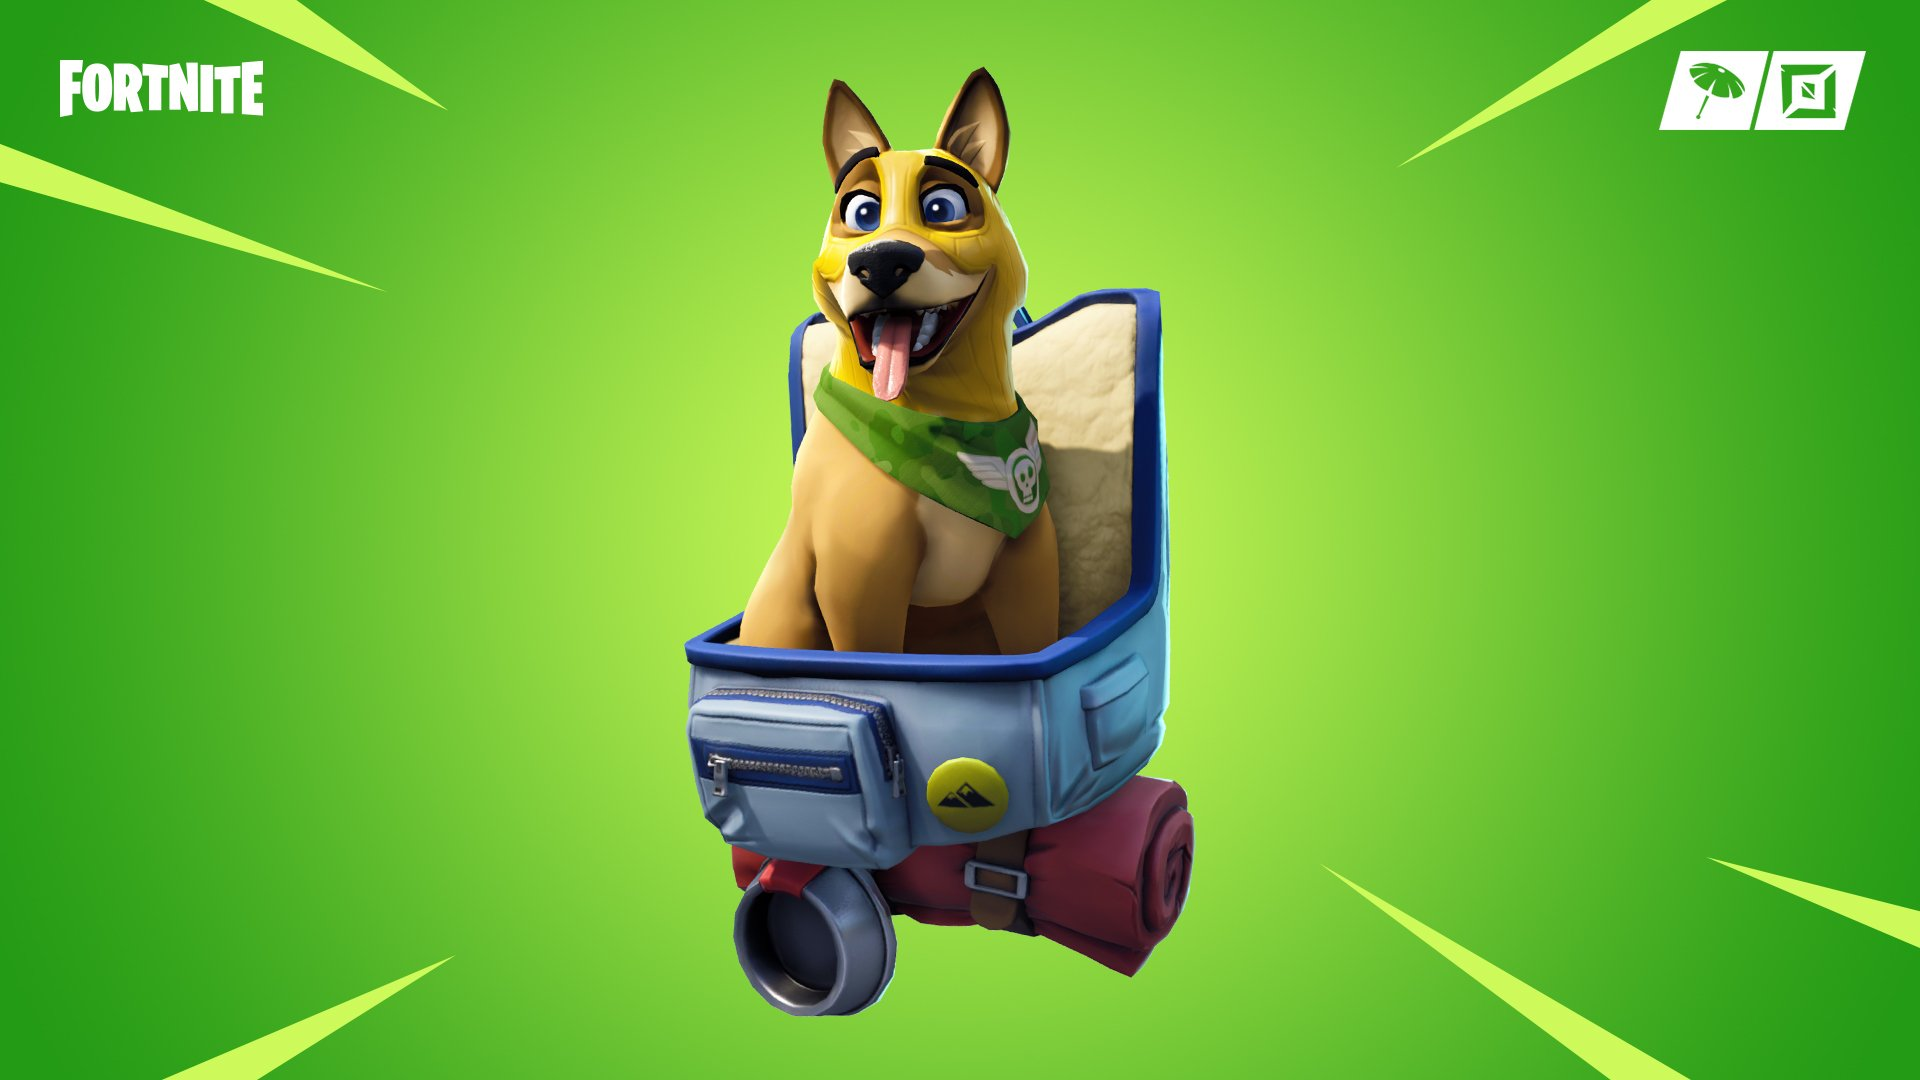 Fortnite Gunner Pet Removed